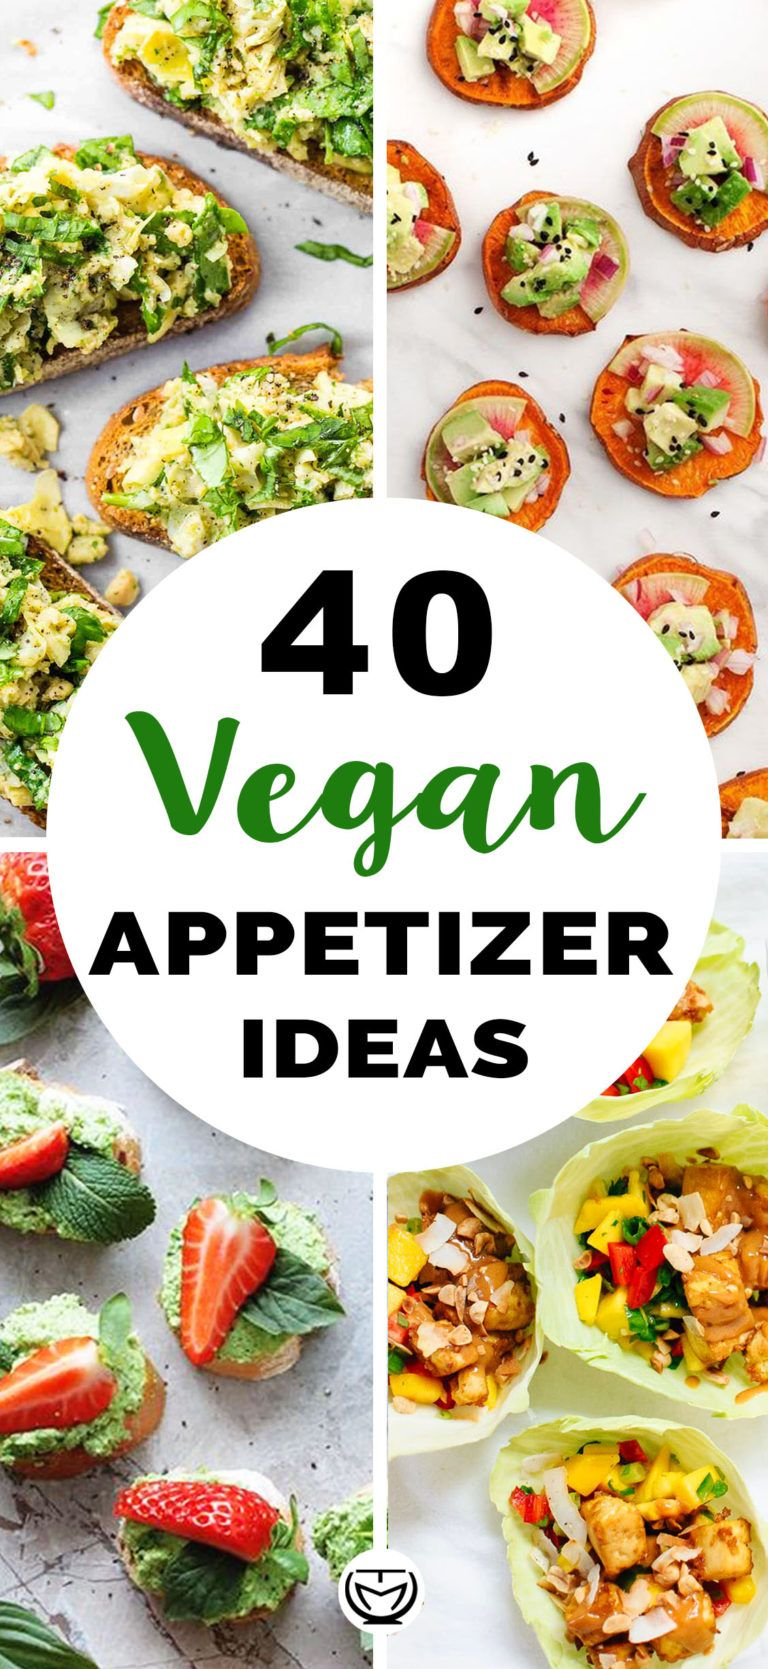 50 DELICIOUS AND EASY VEGAN APPETIZERS - The clever meal